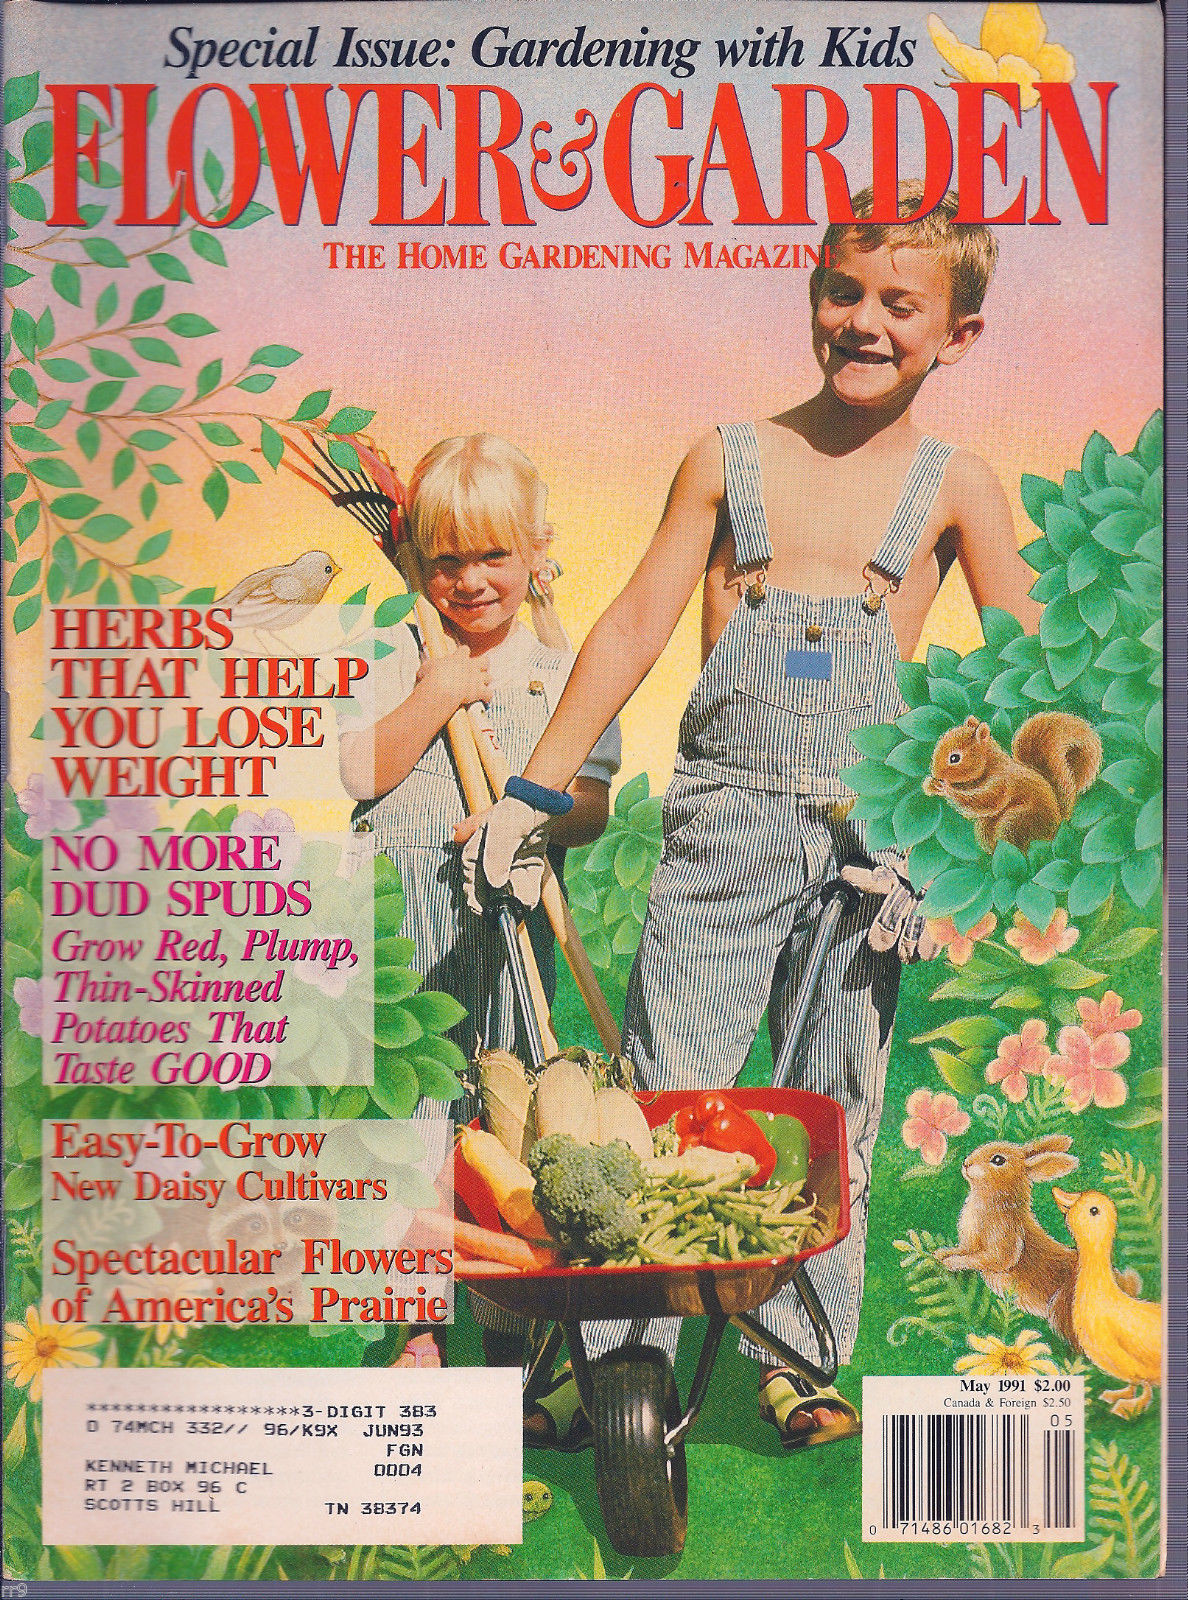 Primary image for Flower & Garden - The Home Gardening Magazine - May 1991